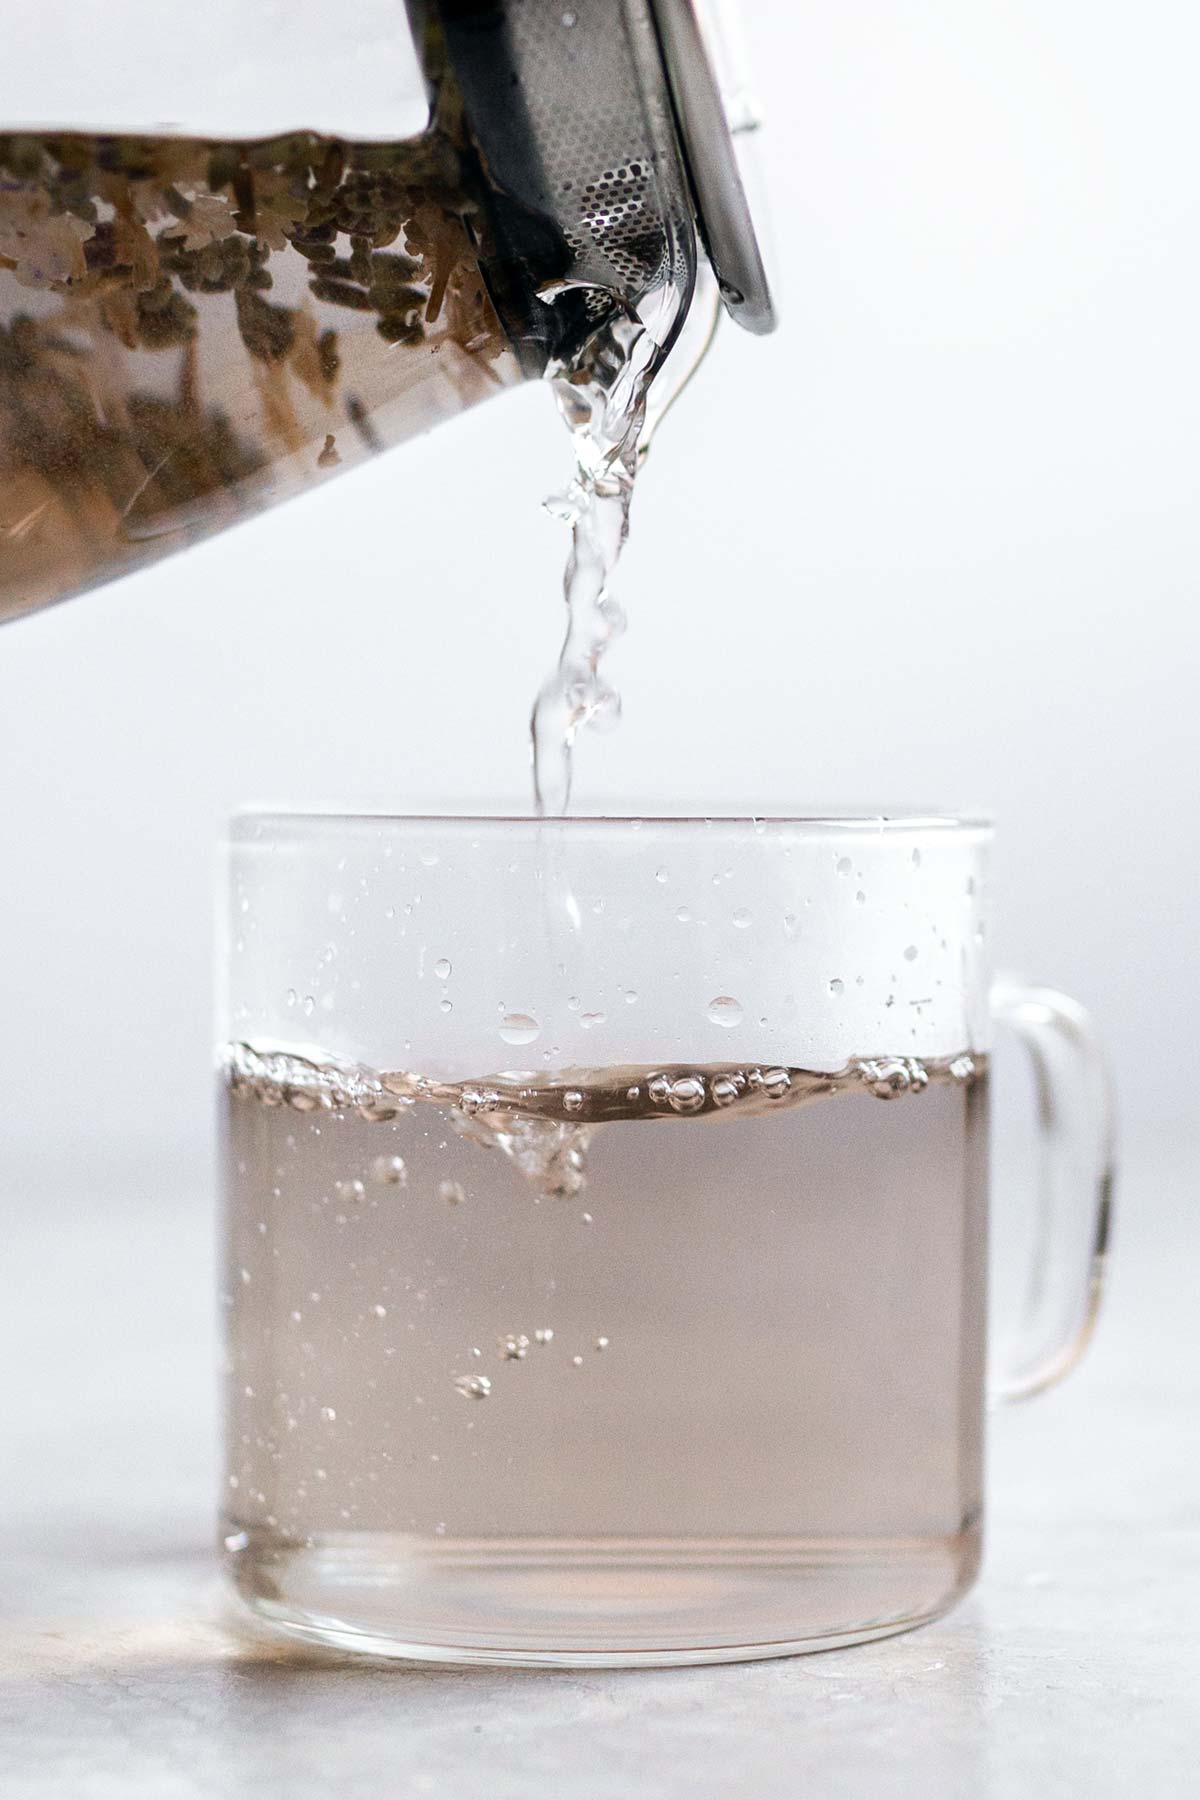 Pouring hot lavender tea in a glass mug.